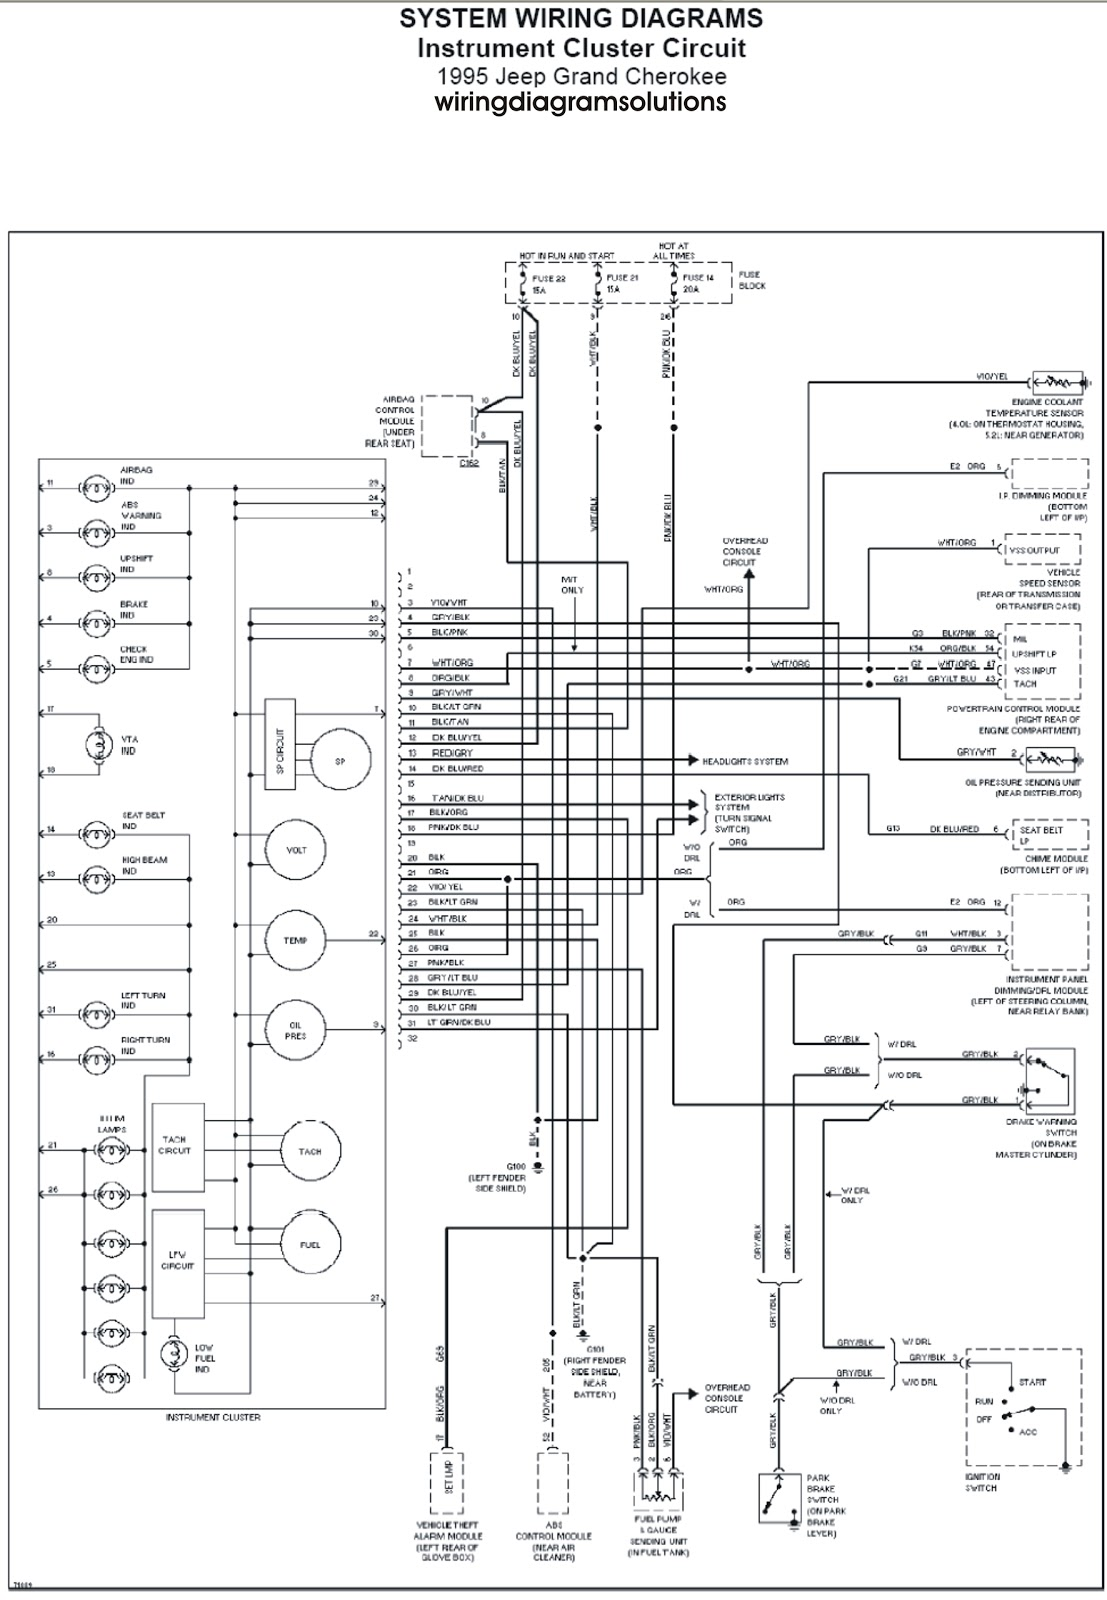 2003 Jeep Grand Cherokee Radio Wiring Diagram : Jeep grand cherokee laredo radio wiring diagram